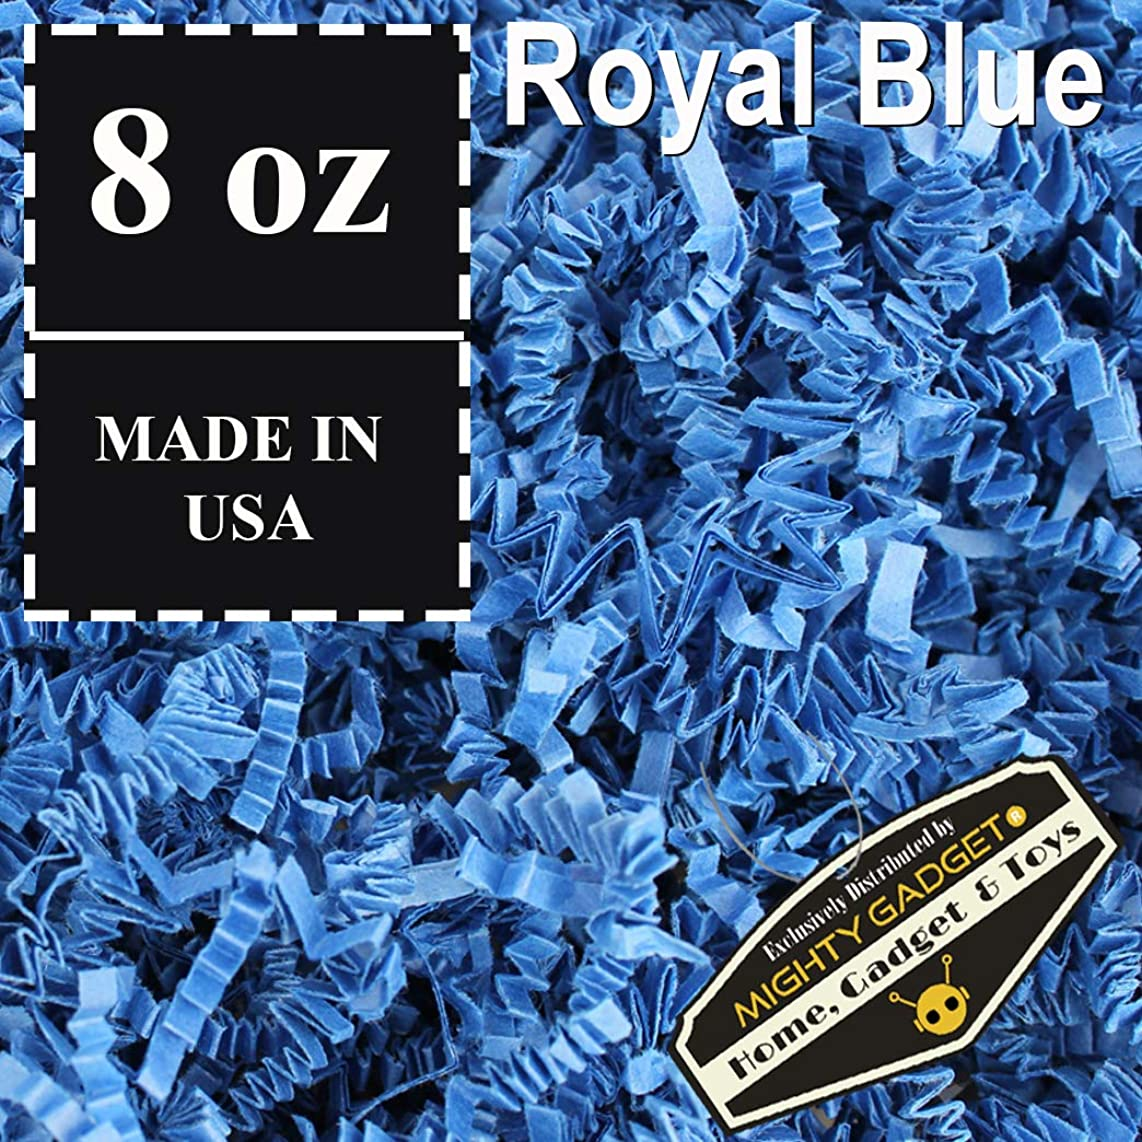 Mighty Gadget (R) 1/2 LB Royal Blue Crinkle Cut Paper Shred Filler for Gift Wrapping & Basket Filling